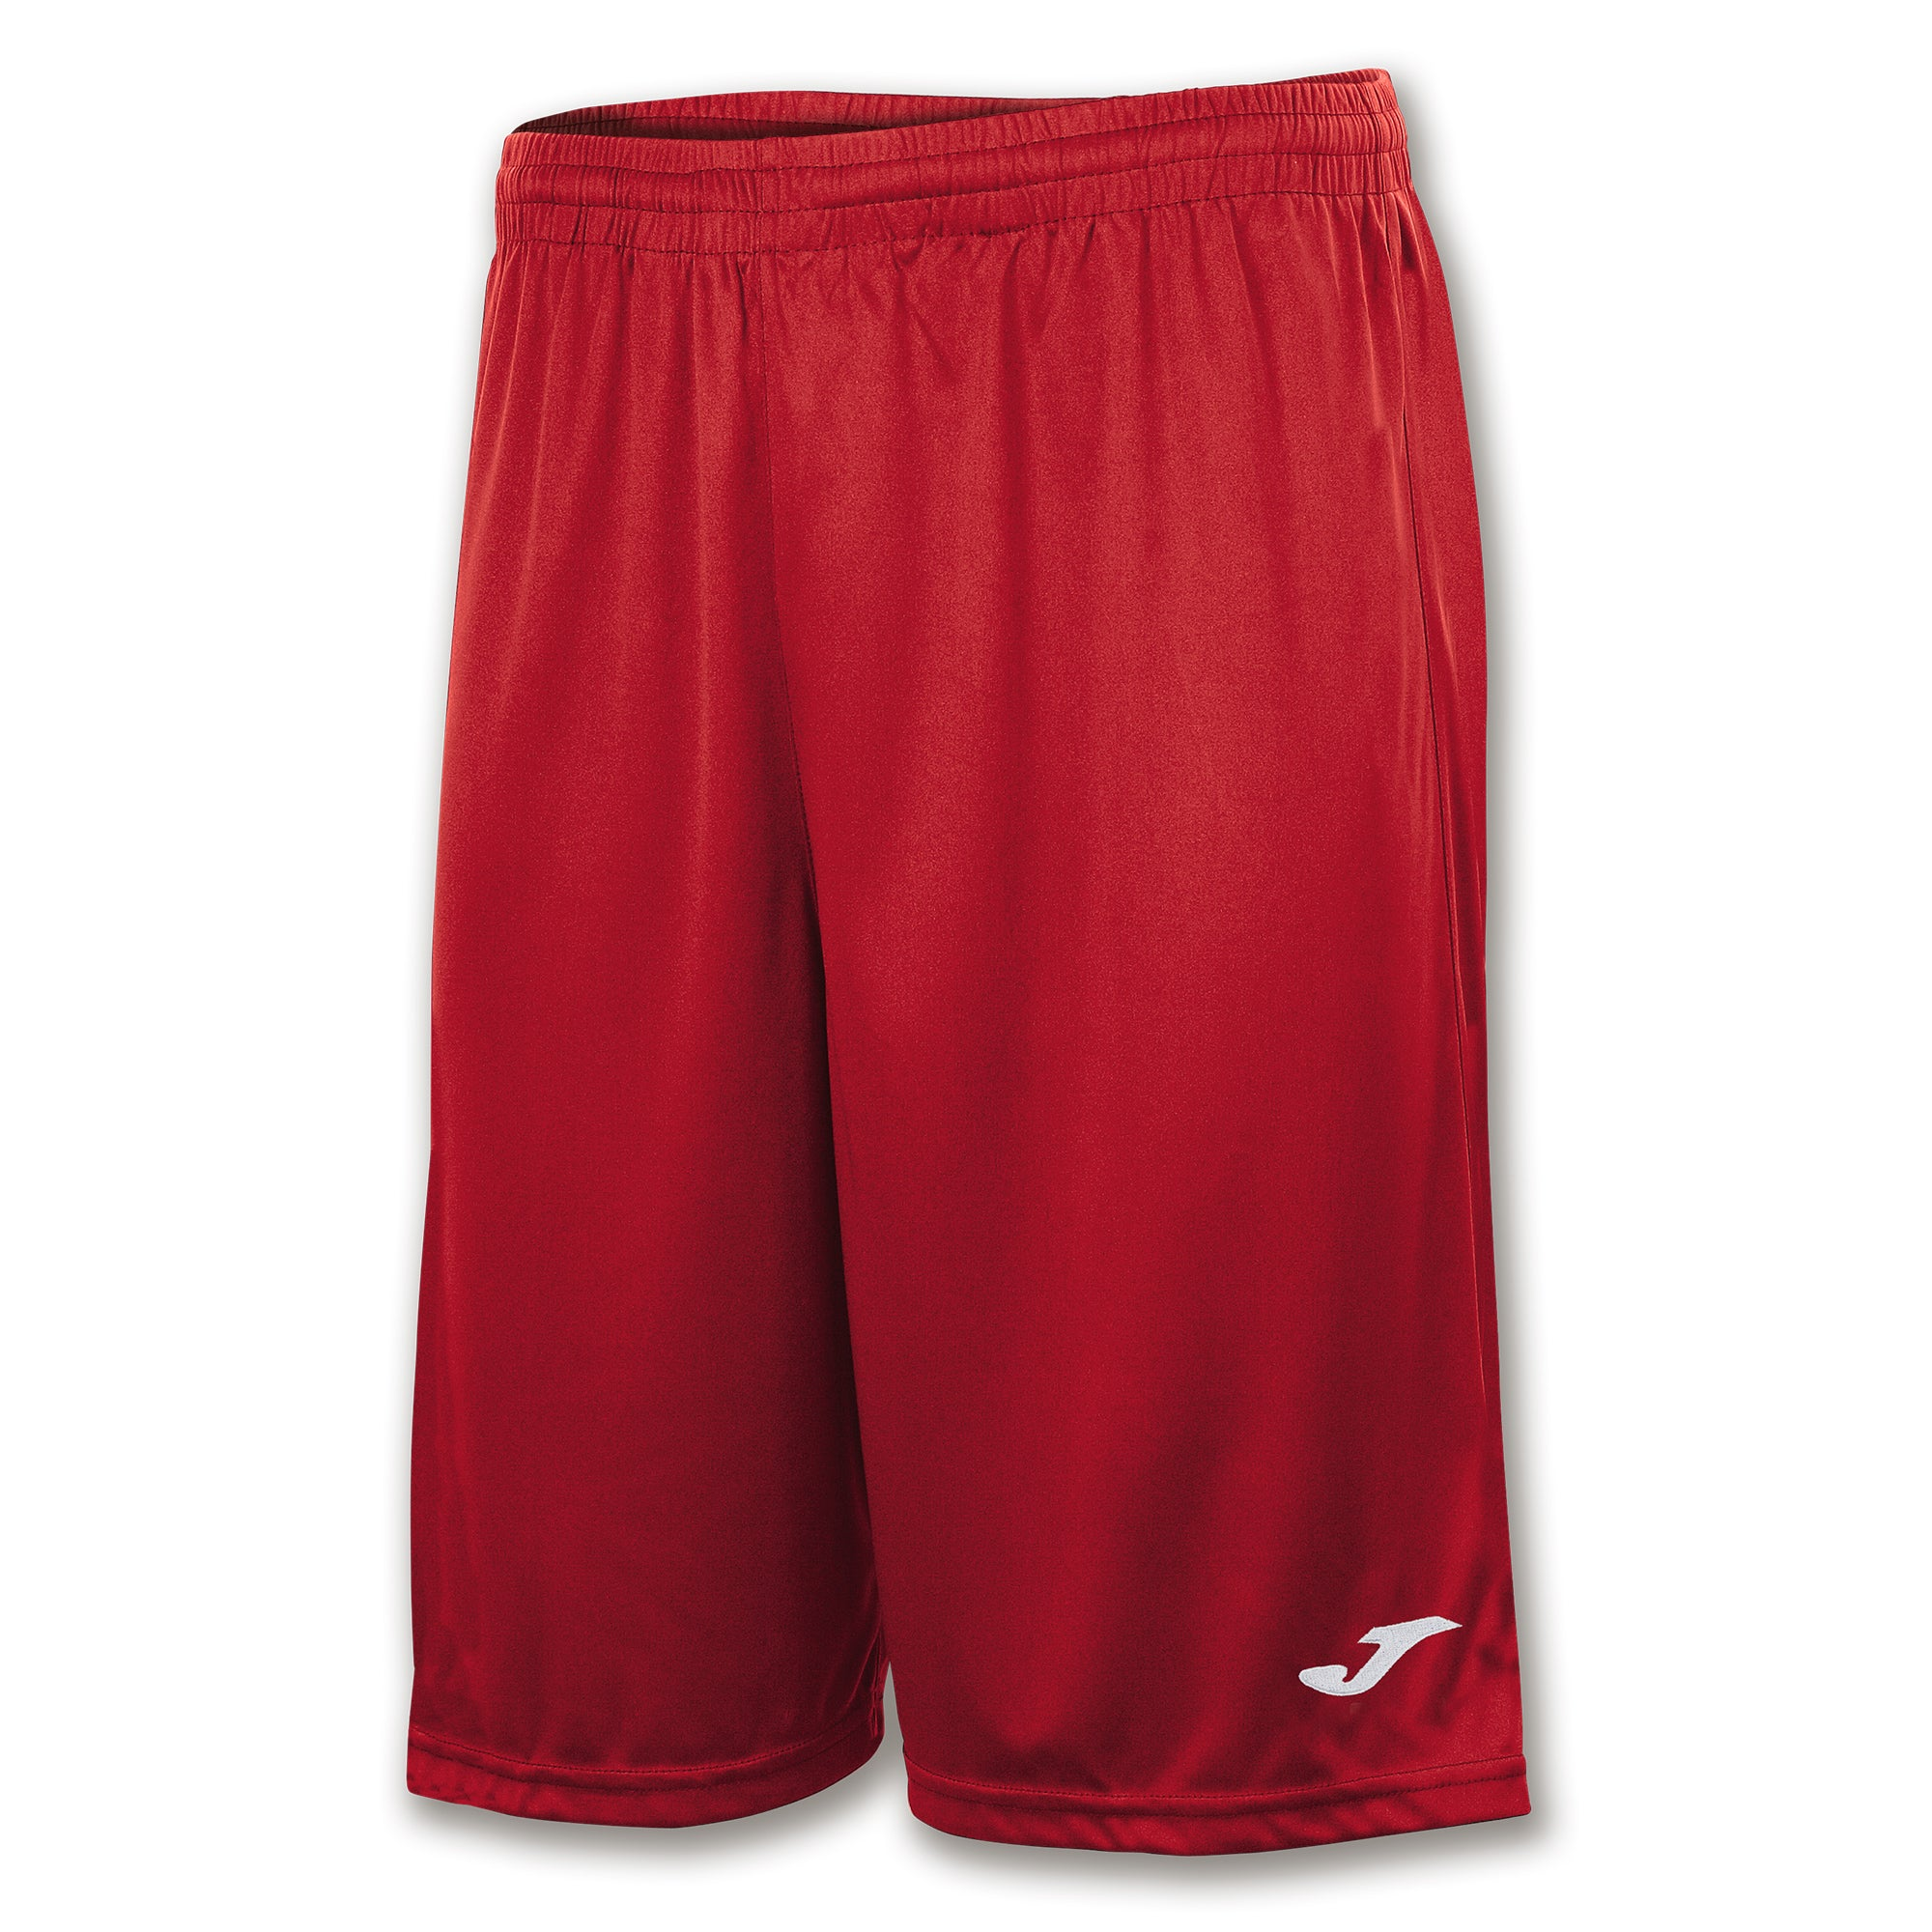 Teamwear - Joma Nobel Long Shorts - Red - JO-101648-600